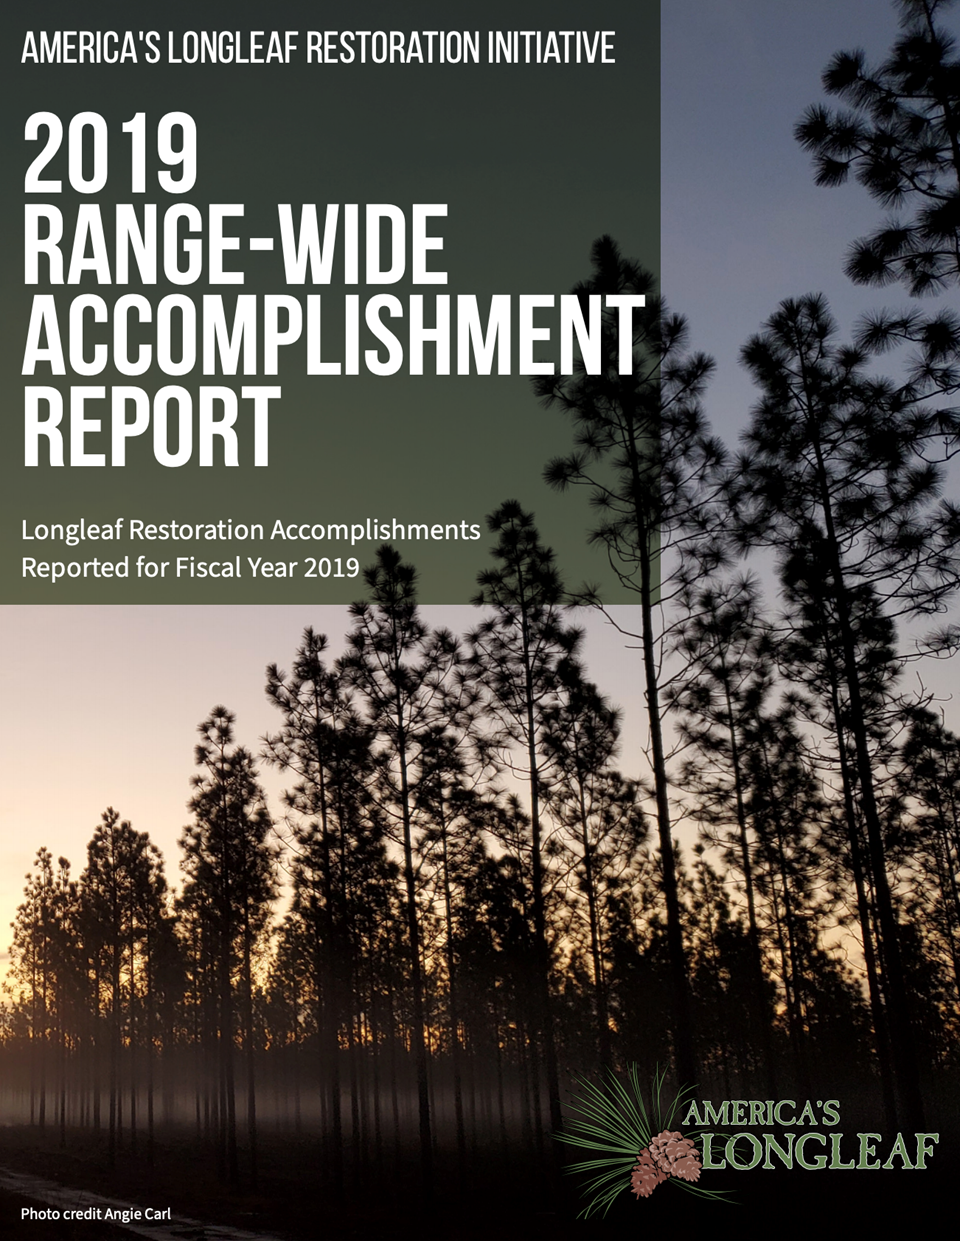 2019 Range-Wide Accomplishment Report